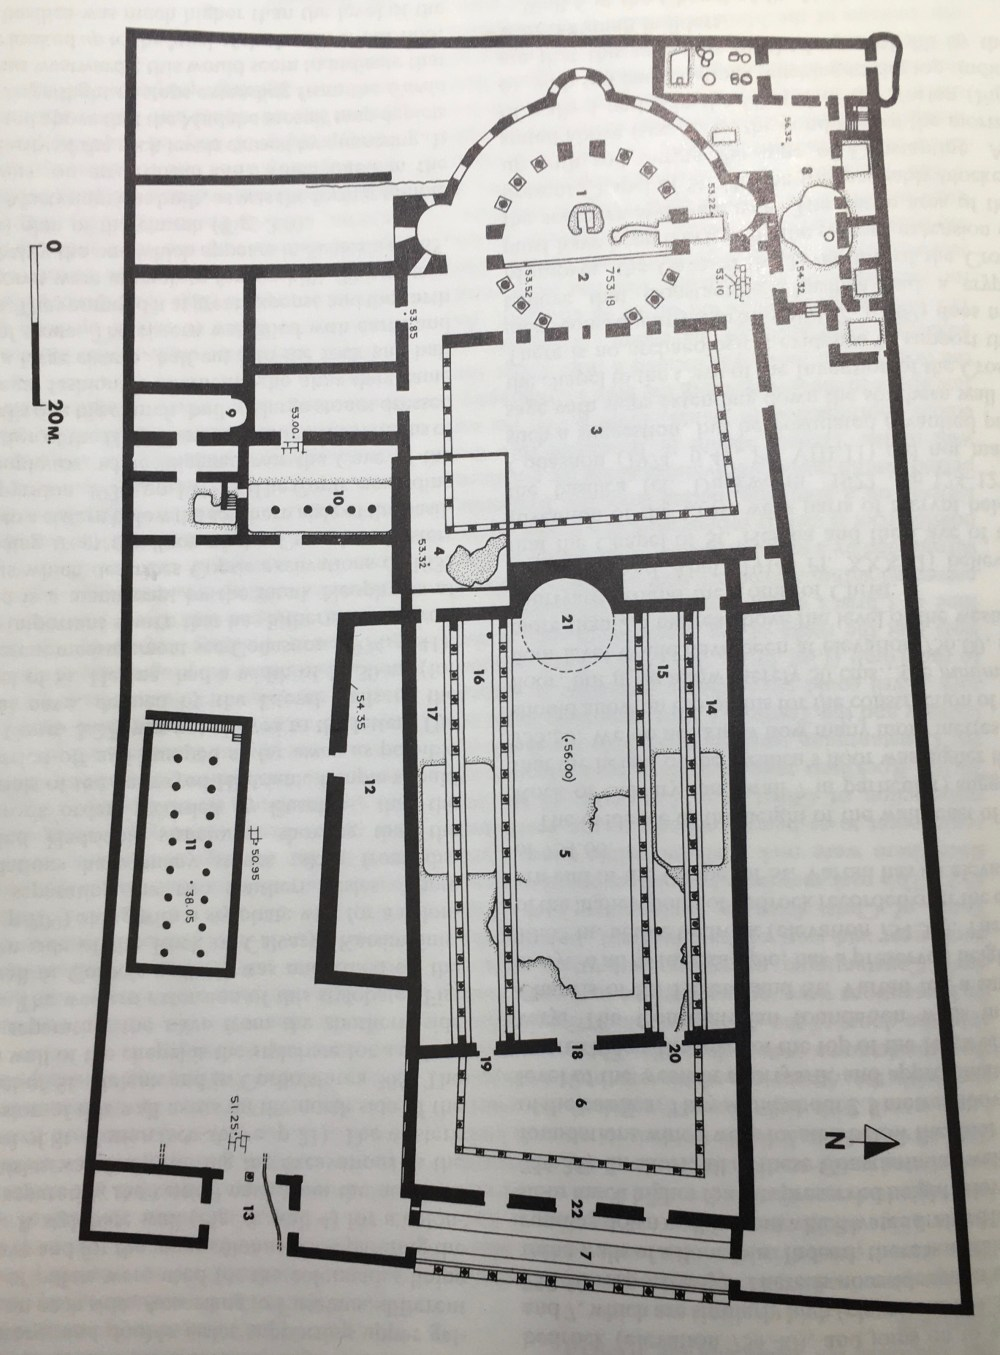 medium resolution of reconstructed plan of constantinian basilica at holy sepulcher after gibson and taylor 1994 p 75